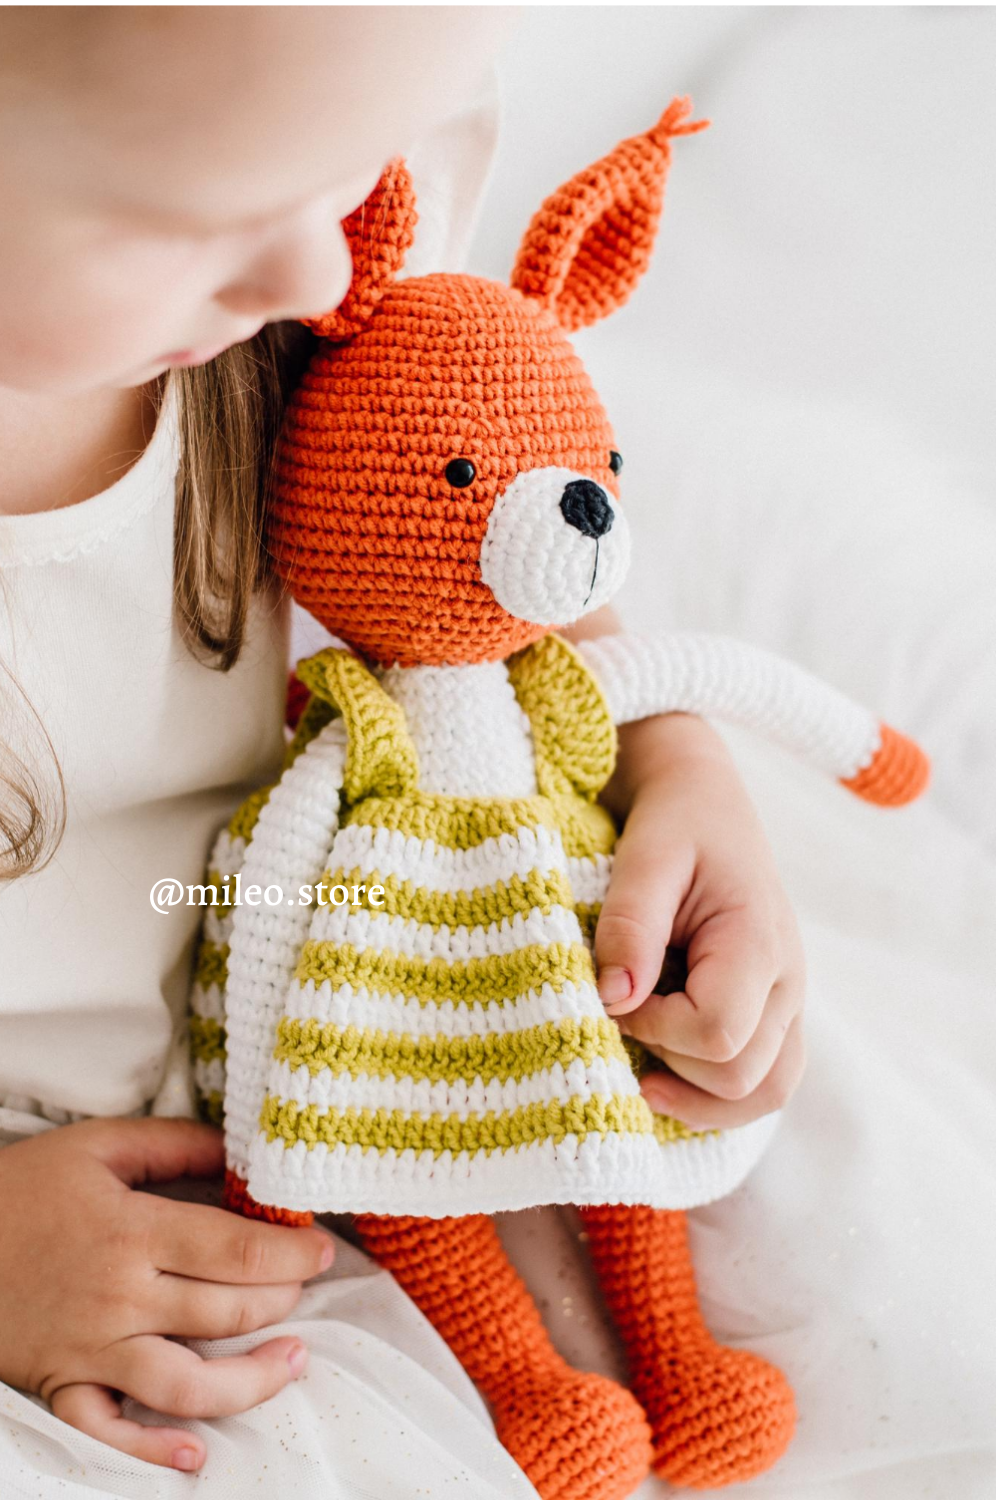 Stuffed Squirrel Toy Best Gift Idea For Toddlers Orange Etsy Baby Shower Woodland Theme Woodland Baby Shower Decorations Forest Nursery Decor [ 1500 x 1000 Pixel ]